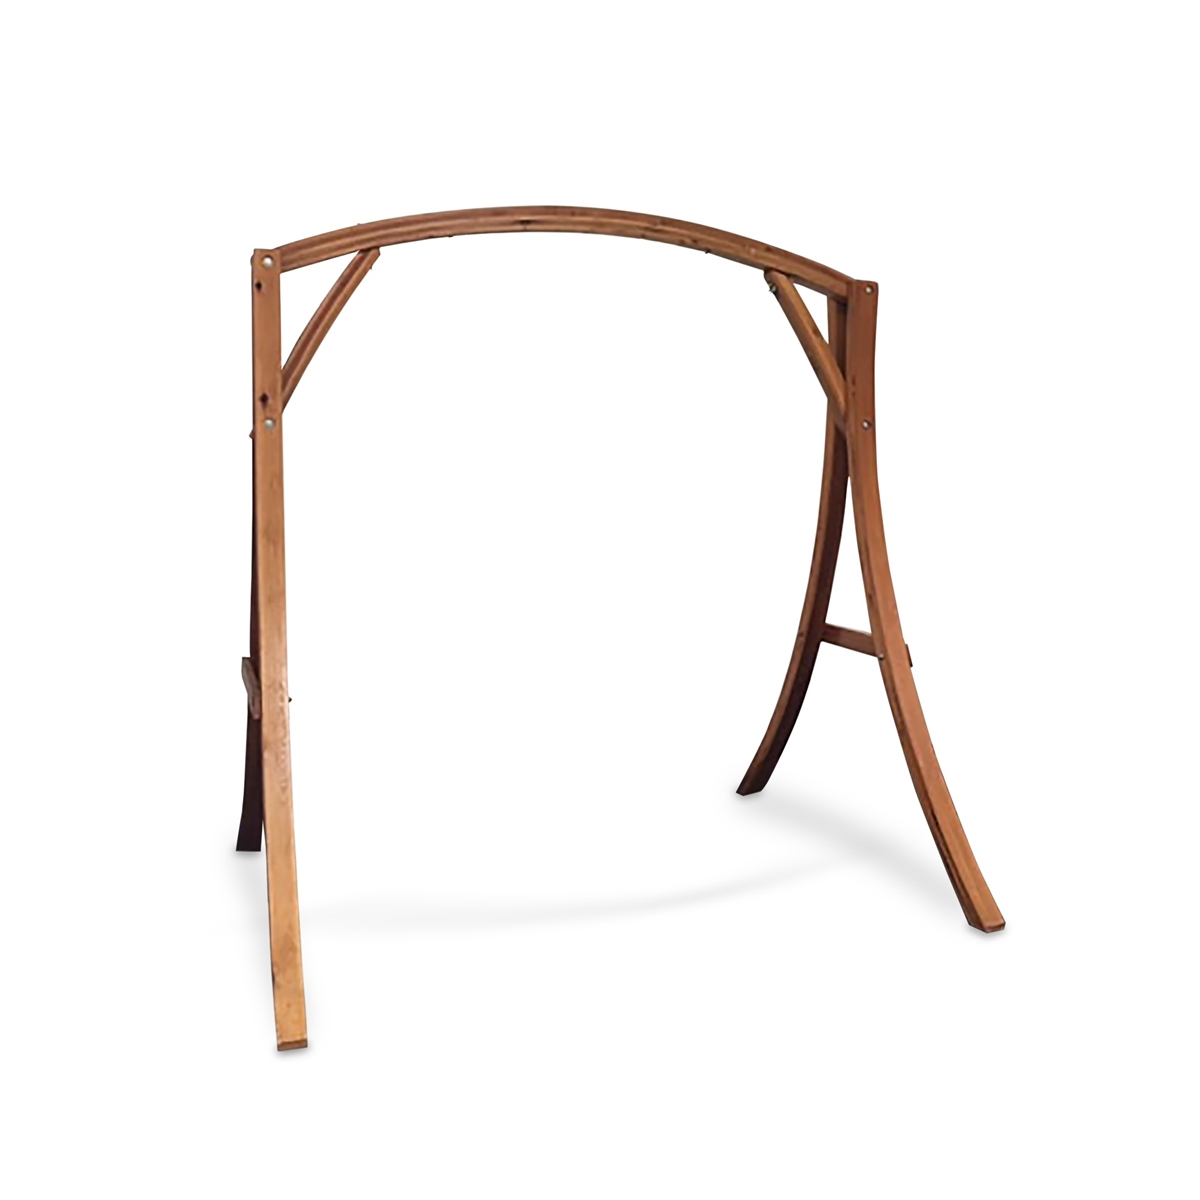 Medium image of wooden arch hammock chair stand